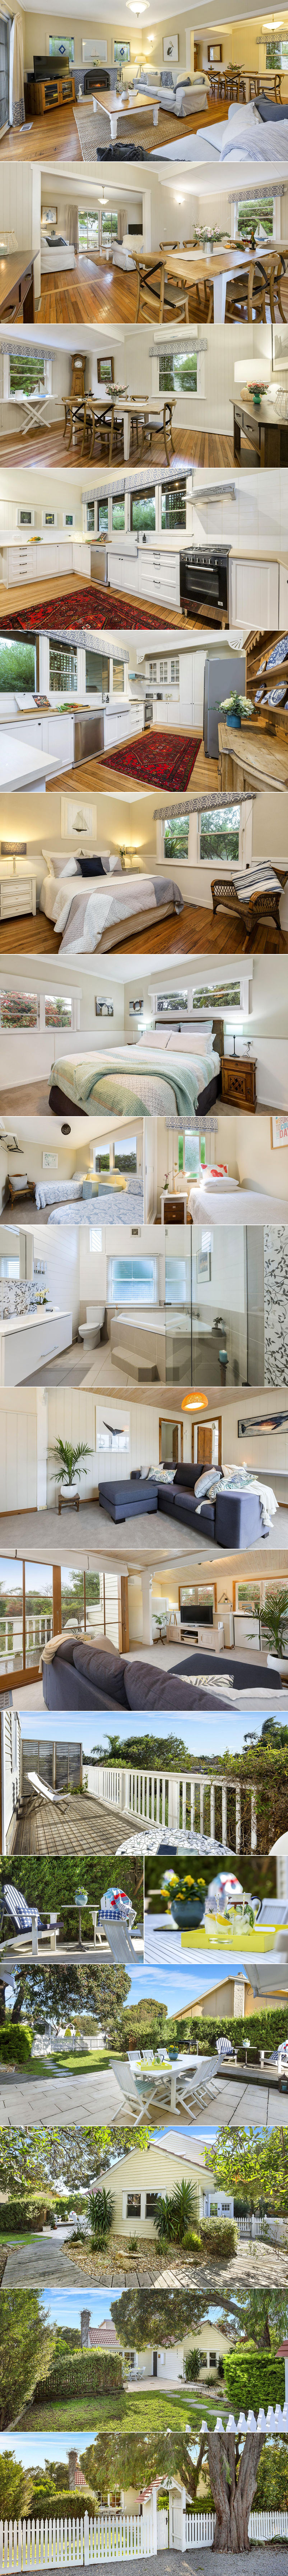 Blue Moon Cottages - Shearwater Cottage